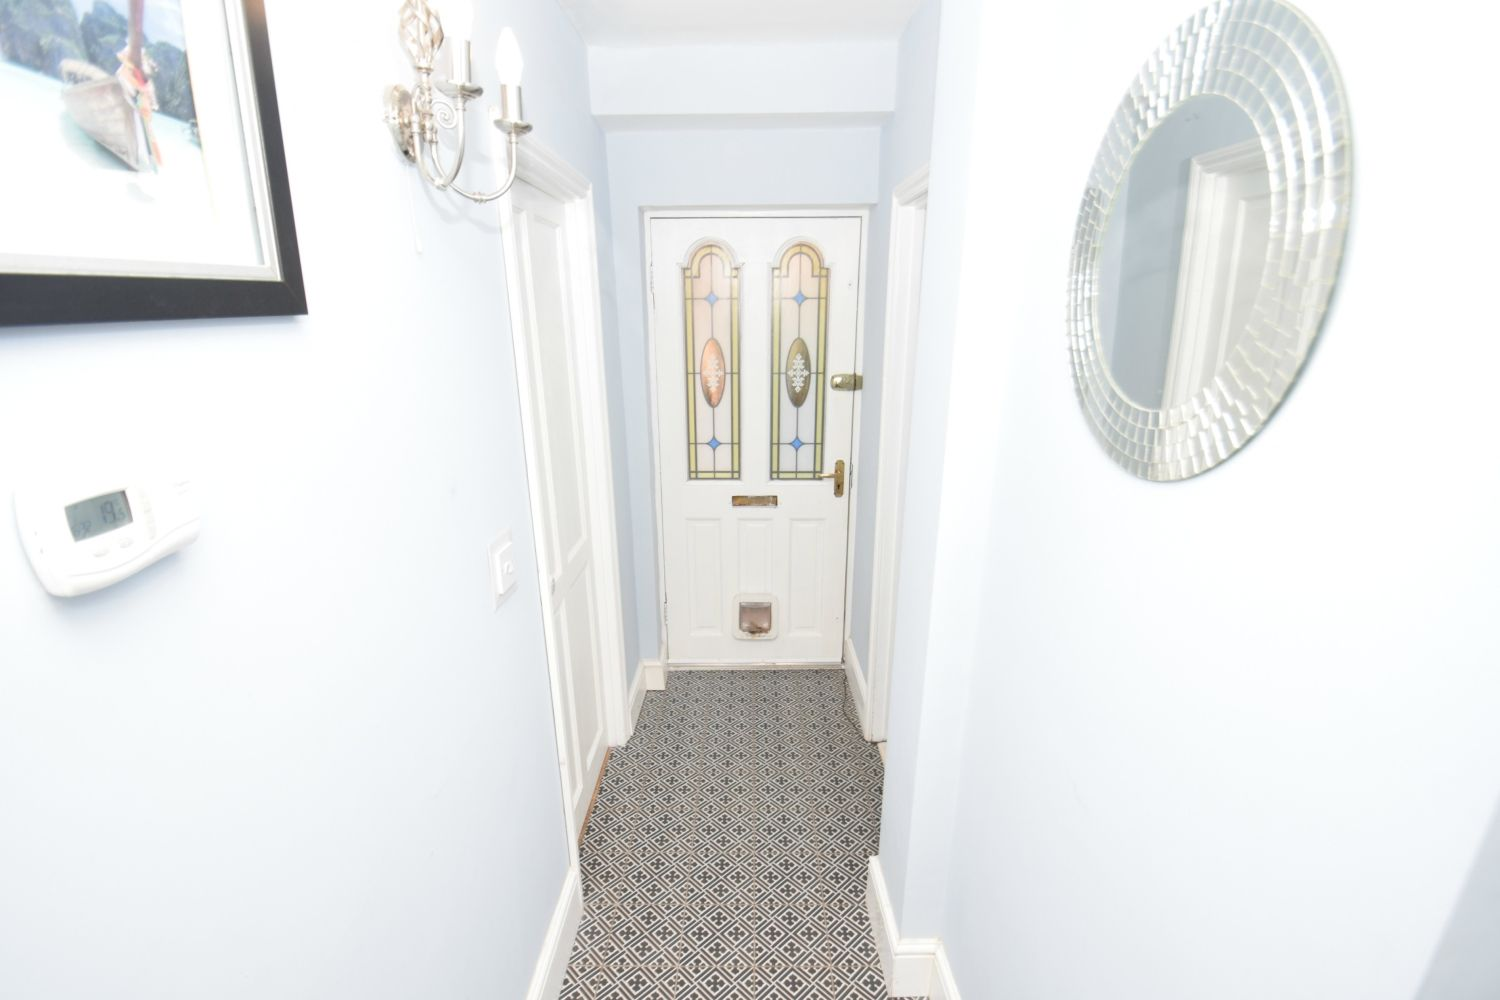 4 bed semi-detached for sale in Upland Grove, Bromsgrove, B61  - Property Image 12